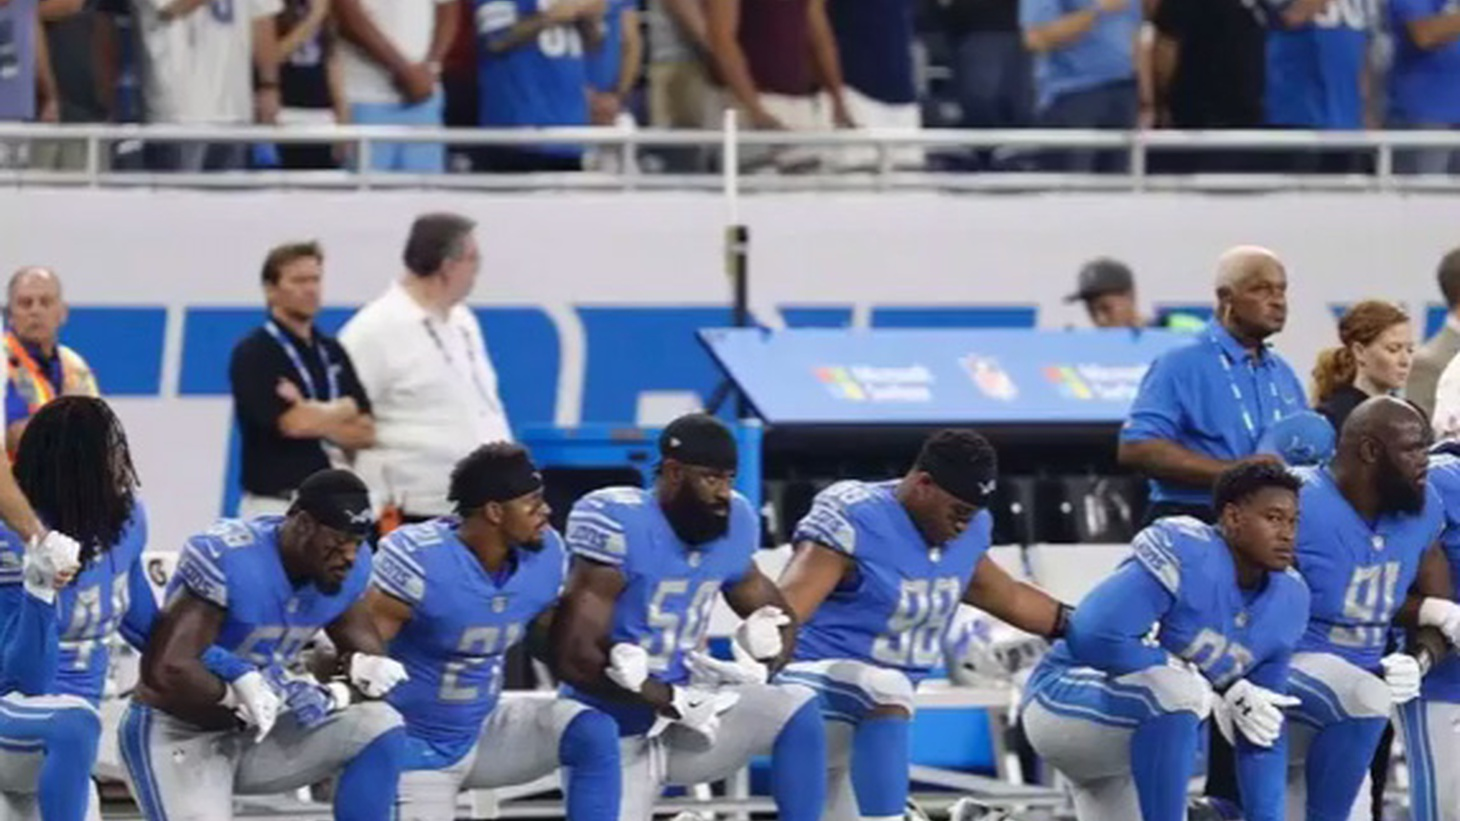 As he sang the last words of the national anthem before the Detroit Lions and Atlanta Falcons started to play, Rico Lavelle took a knee. When the Seattle Seahawks played the Tennesse Titans, both teams stayed in their locker rooms during the National Anthem.